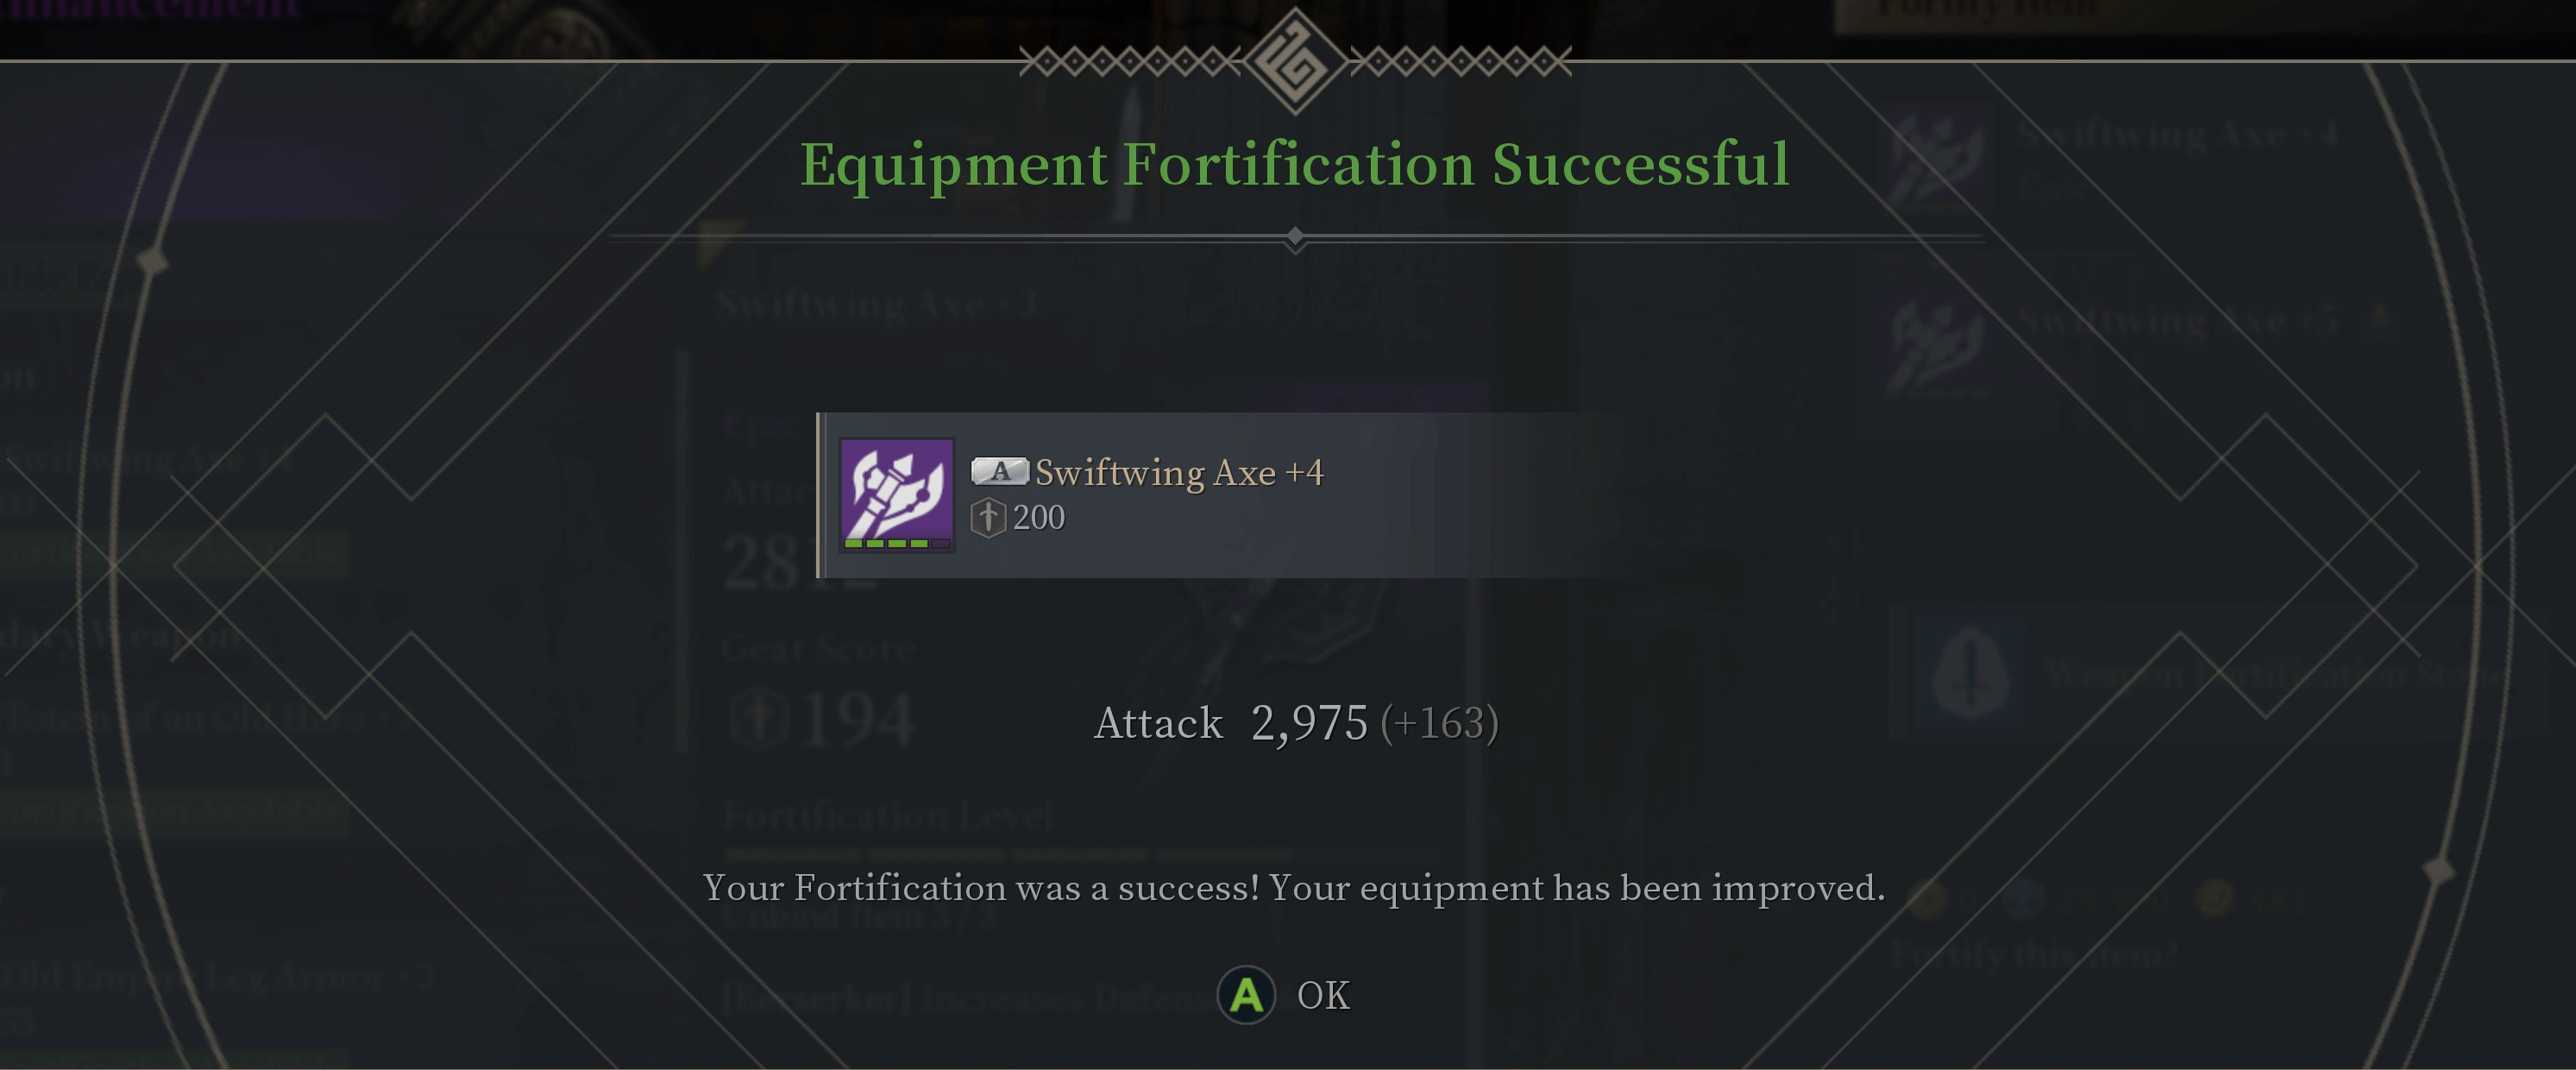 Master_Enhancement_Fortification_Successful__2_.jpg